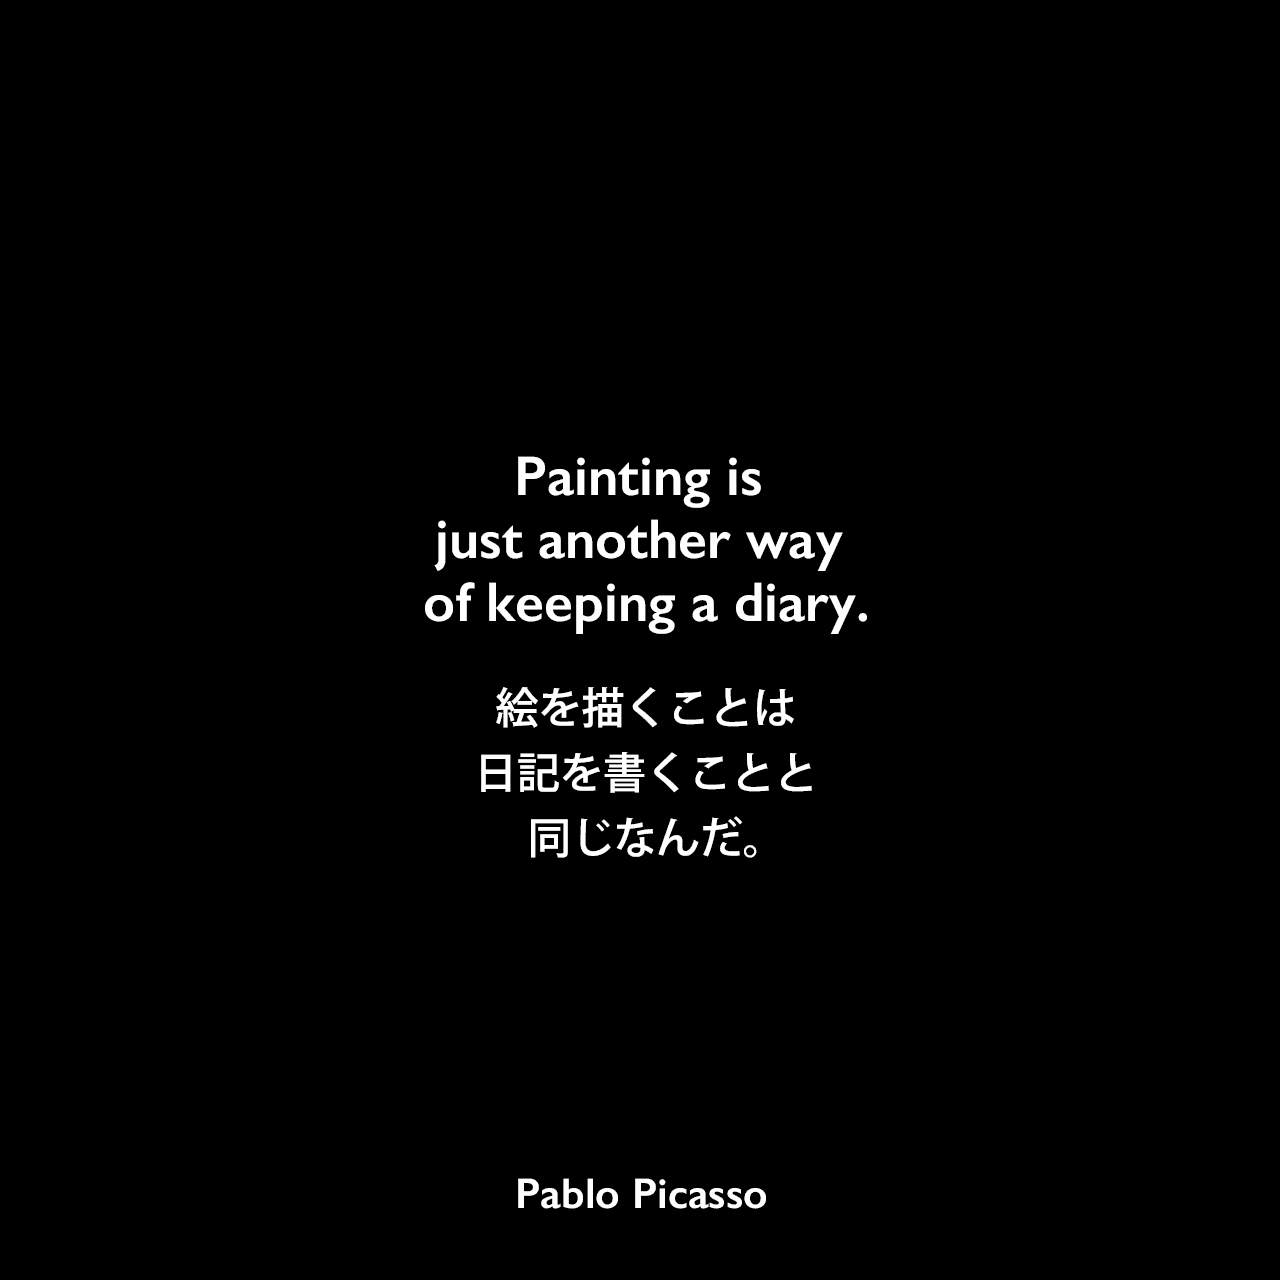 Painting is just another way of keeping a diary.絵を描くことは日記を書くことと同じなんだ。Pablo Picasso